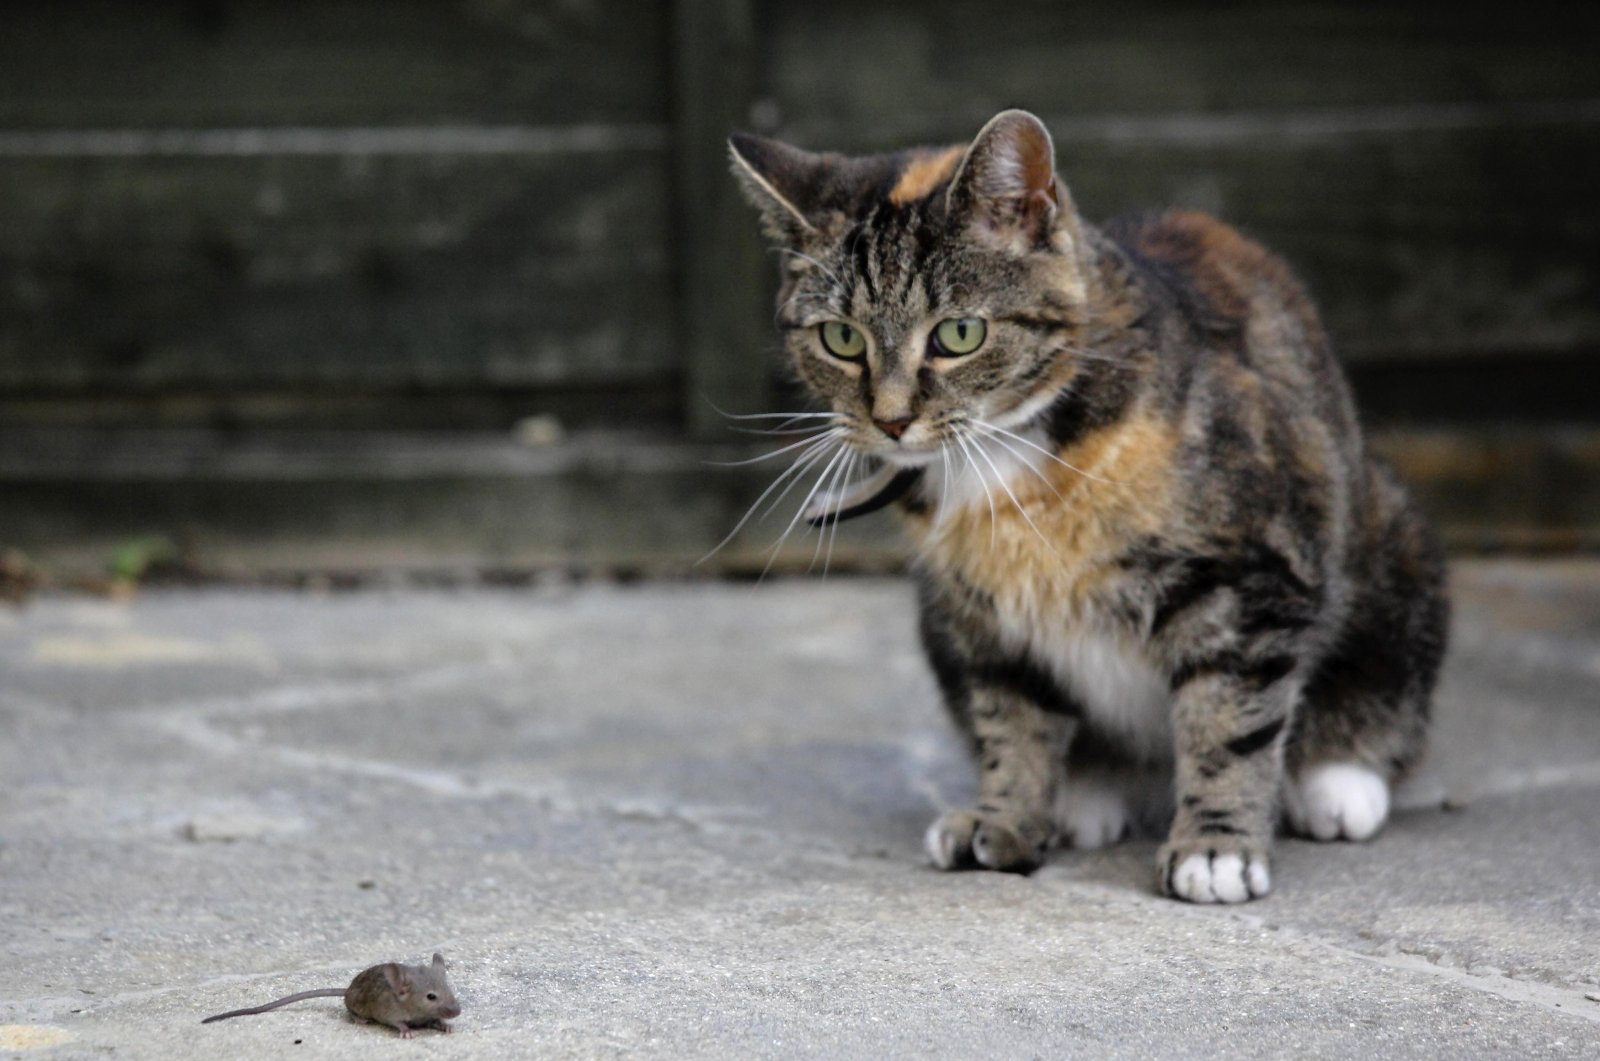 Jess, a seven-year-old female cat, looks on as a mouse runs by in a backyard in Gosport, England, July 29, 2011. (Reuters Photo)